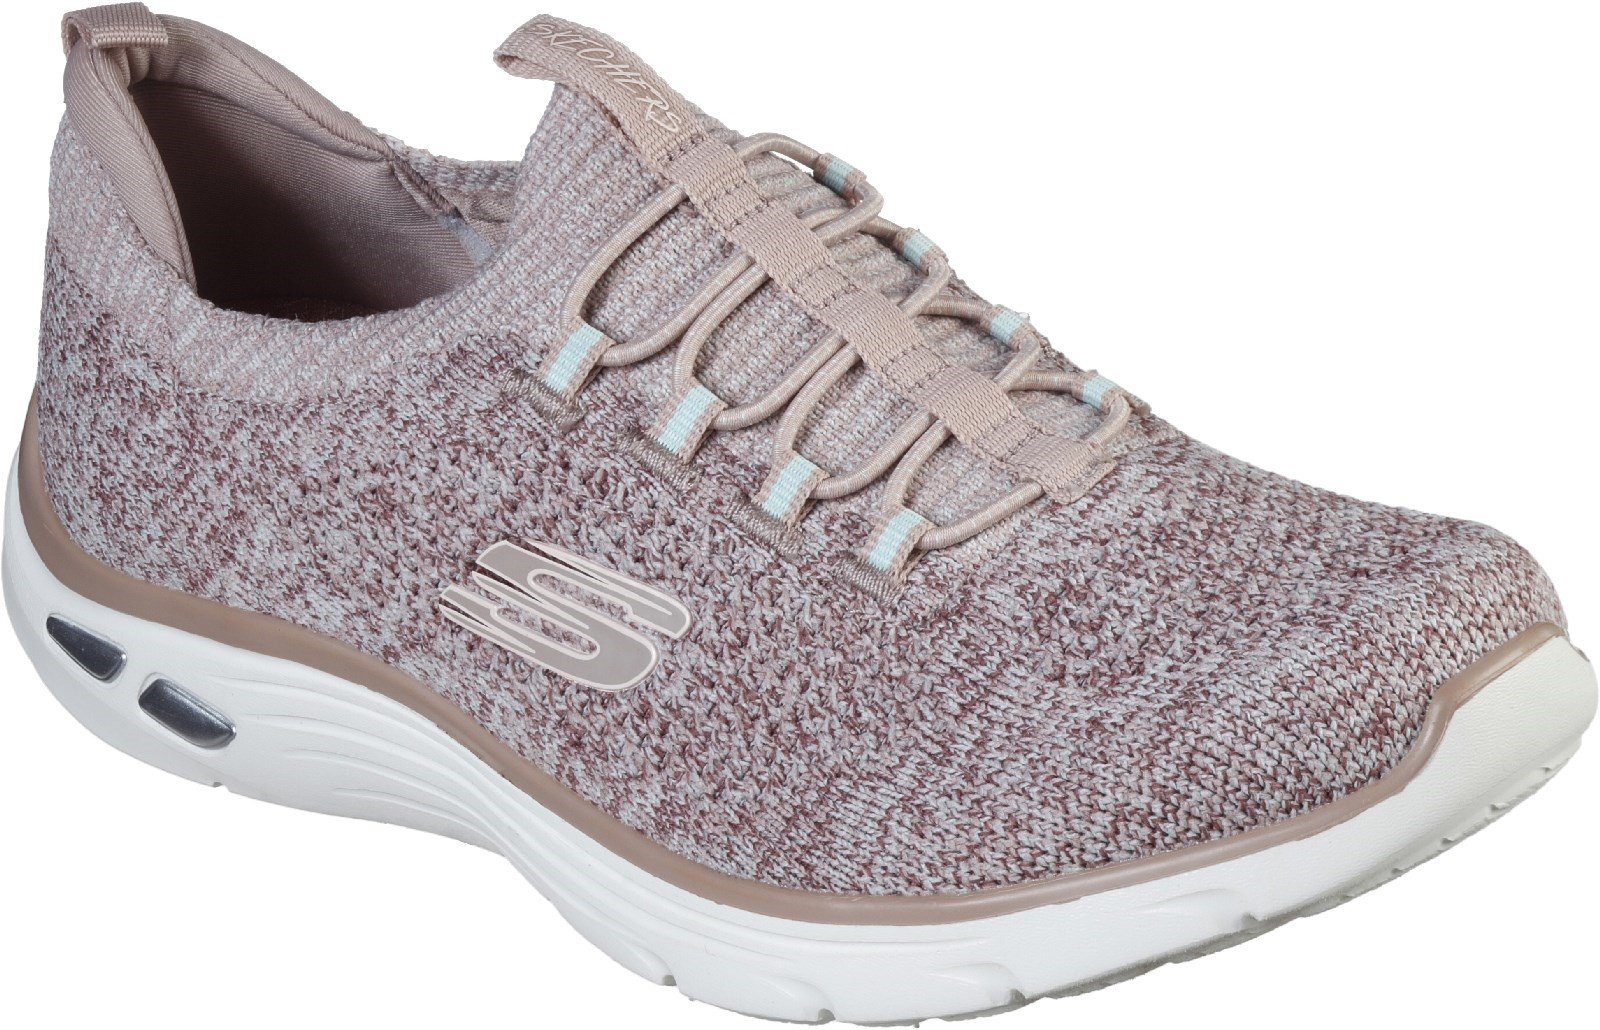 Skechers Women's Relaxed Fit Empire D'Lux Sharp Trainers Various Colours 30300 - Rose 3